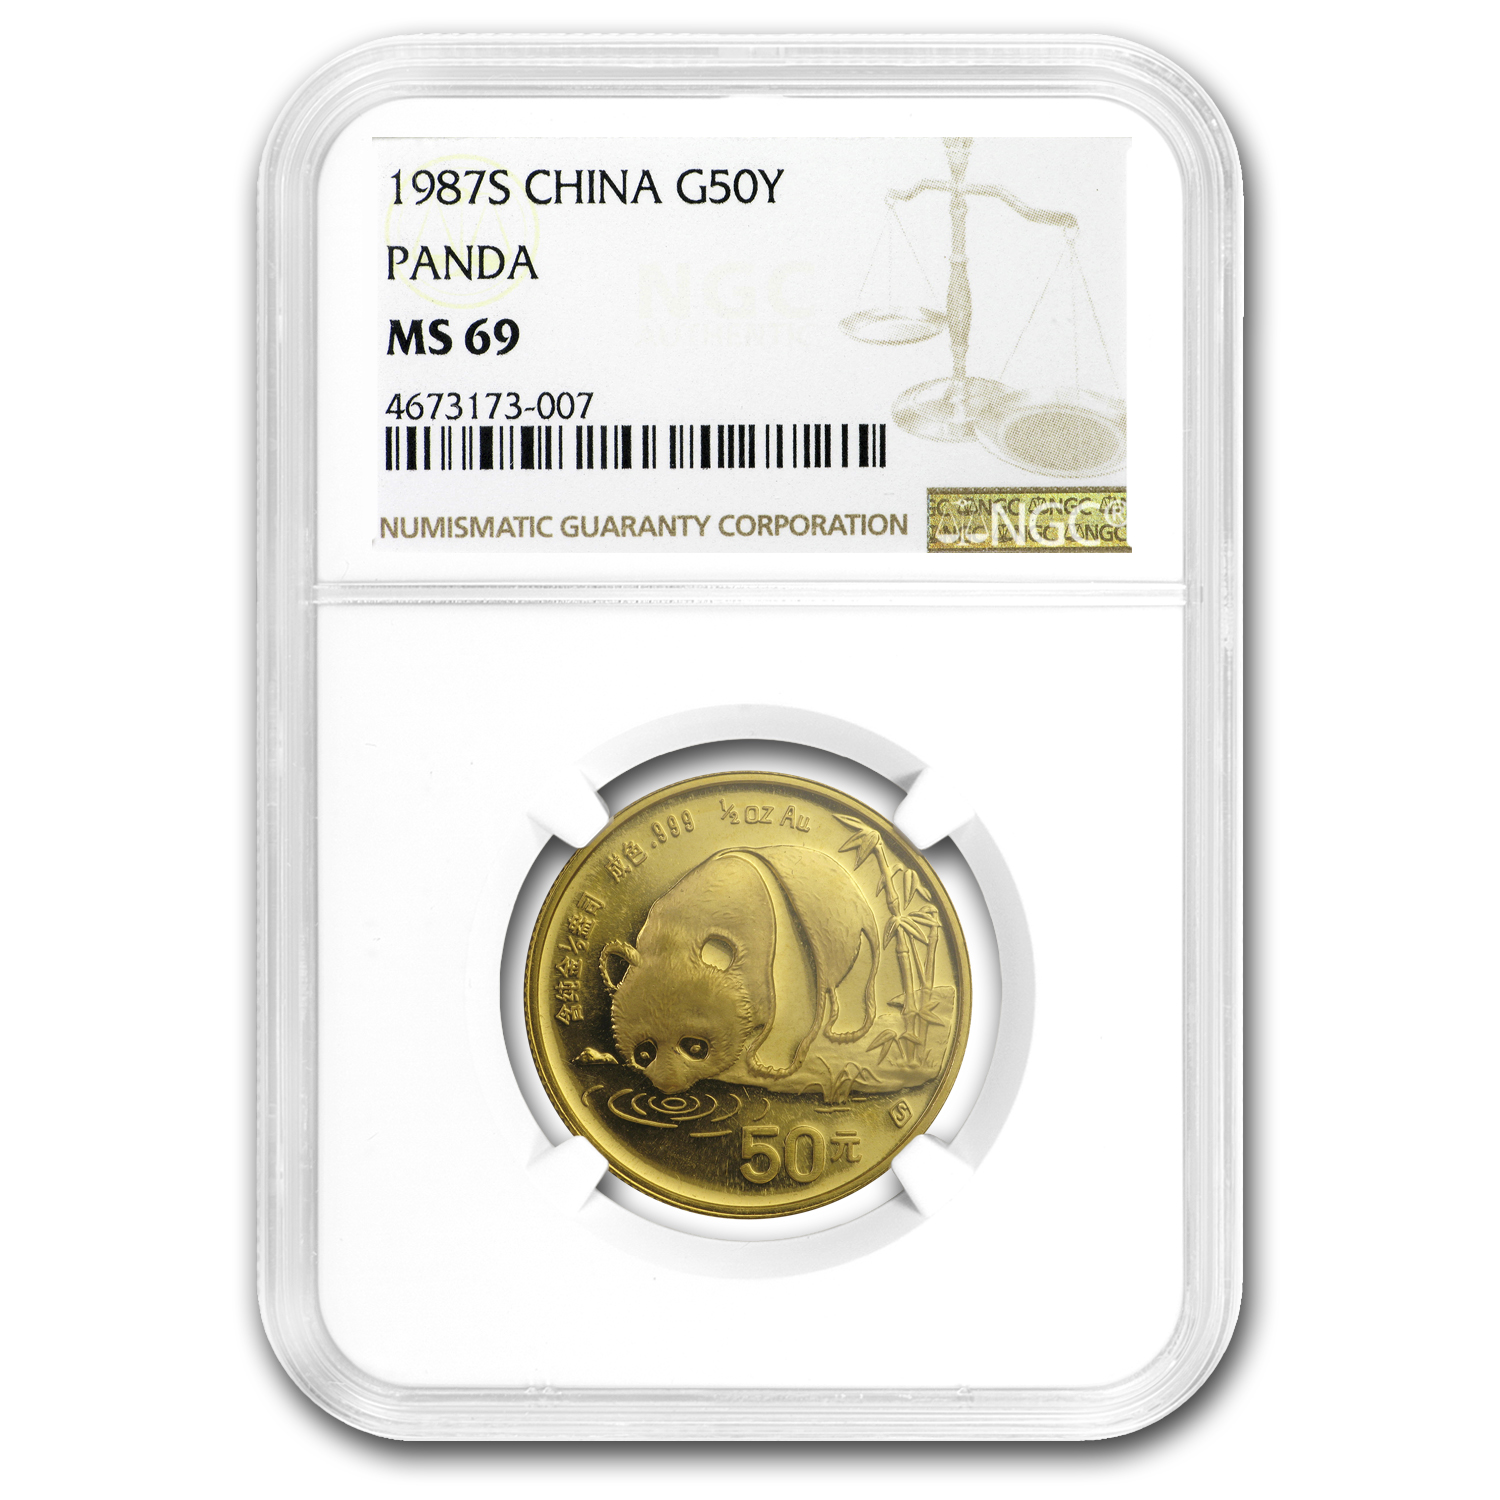 1987-S China 1/2 oz Gold Panda MS-69 NGC